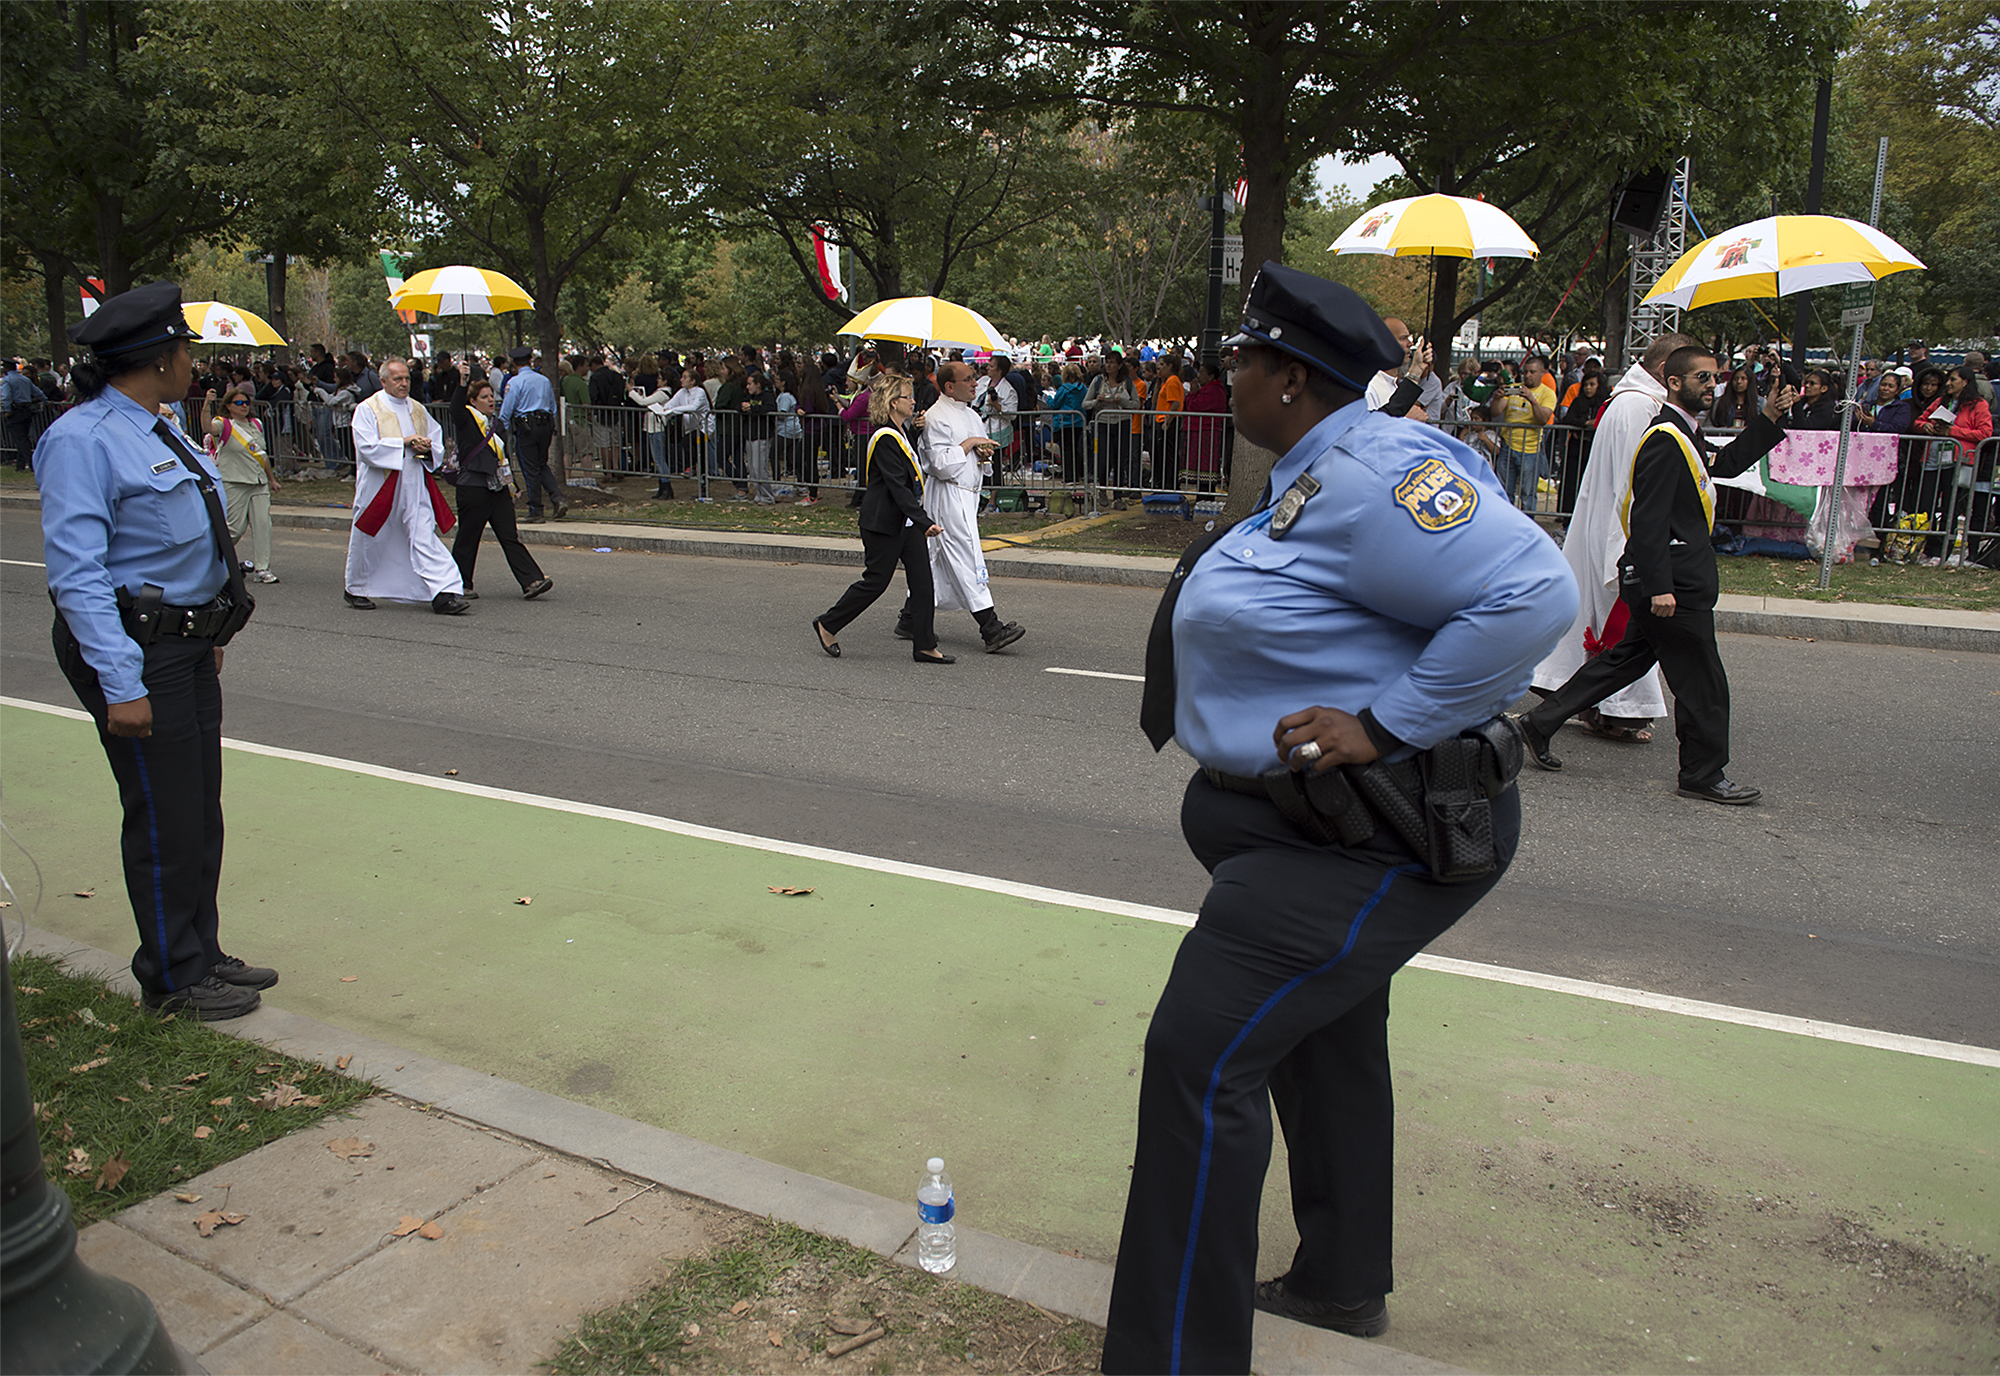 Philadelphia Police Officers watch as priests are escorted throughout the parkway to give communion as Pope Francis holds Mass on the Ben Franklin Parkway on September 27, 2015.